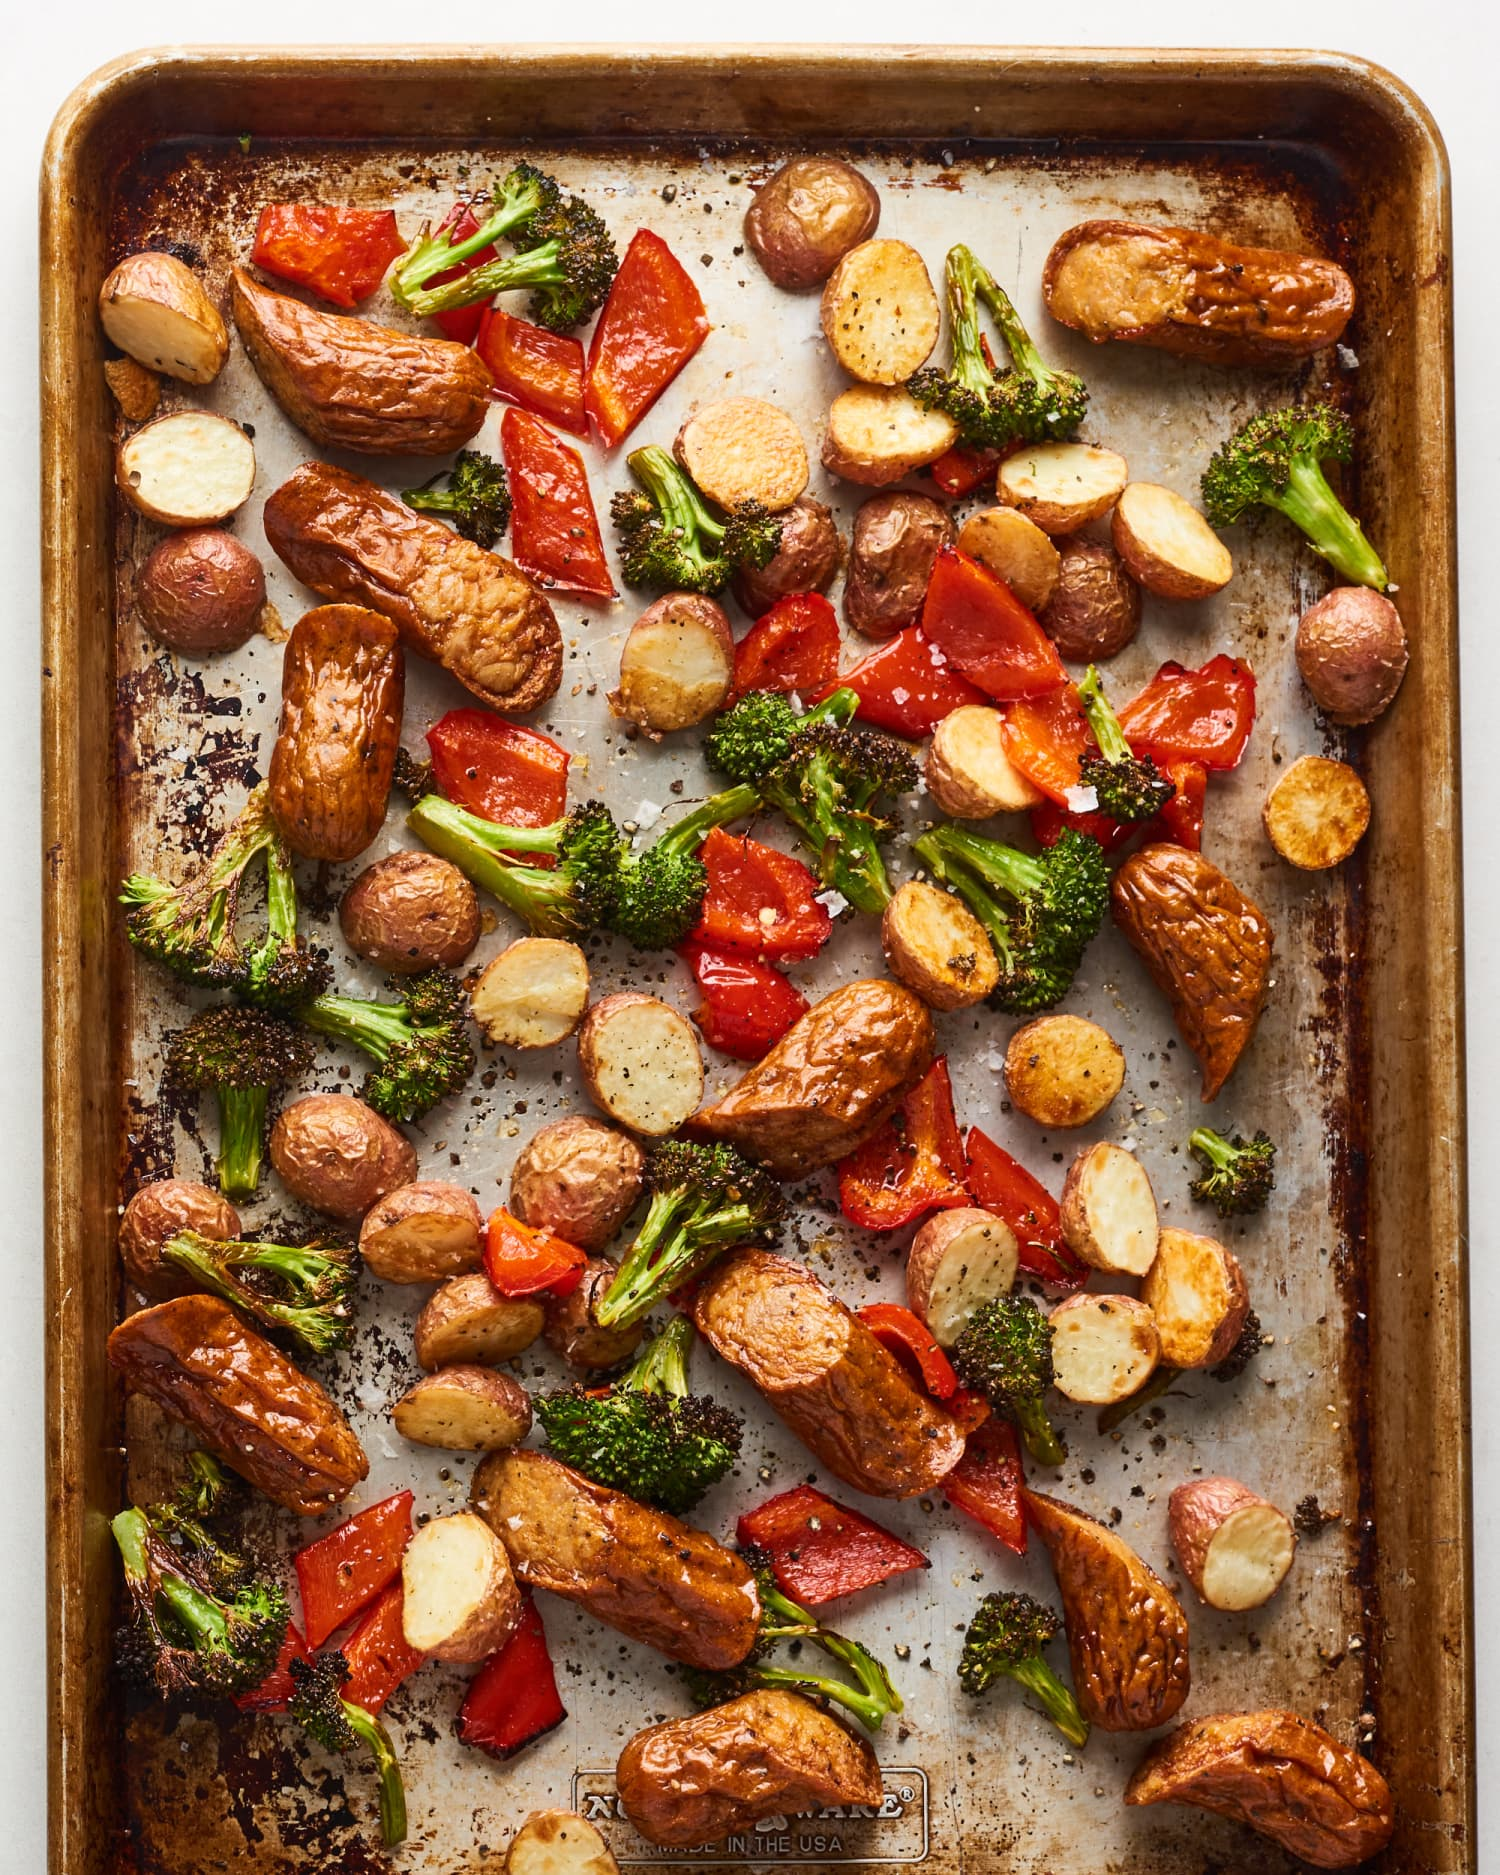 Sheet Pan Italian Sausage And Veggies Kitchn